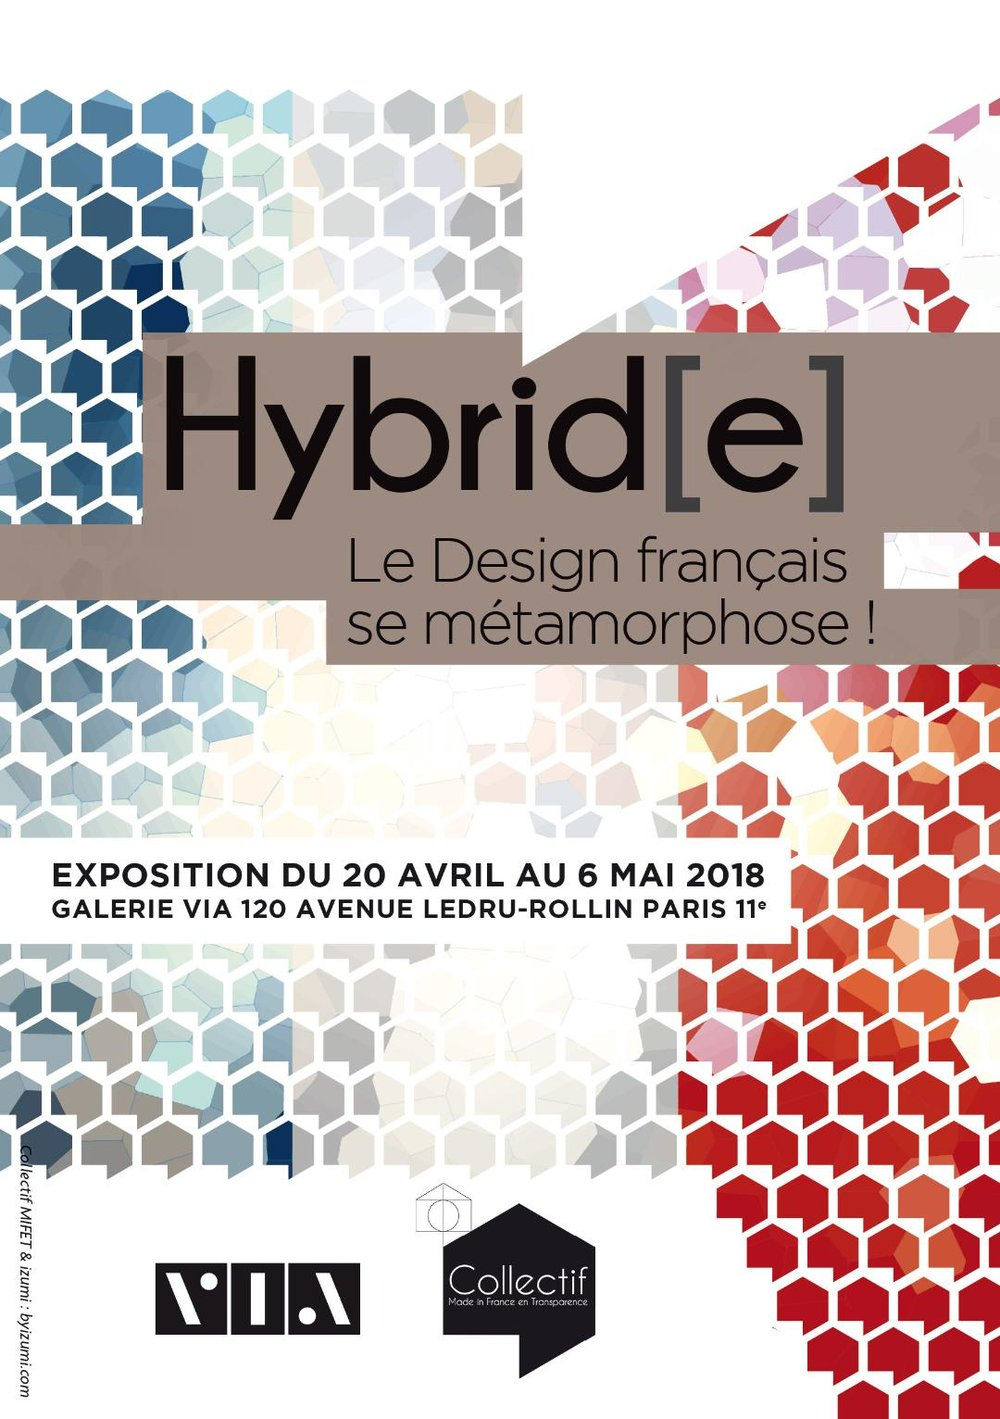 hybride exposition via collectif made in france.jpg